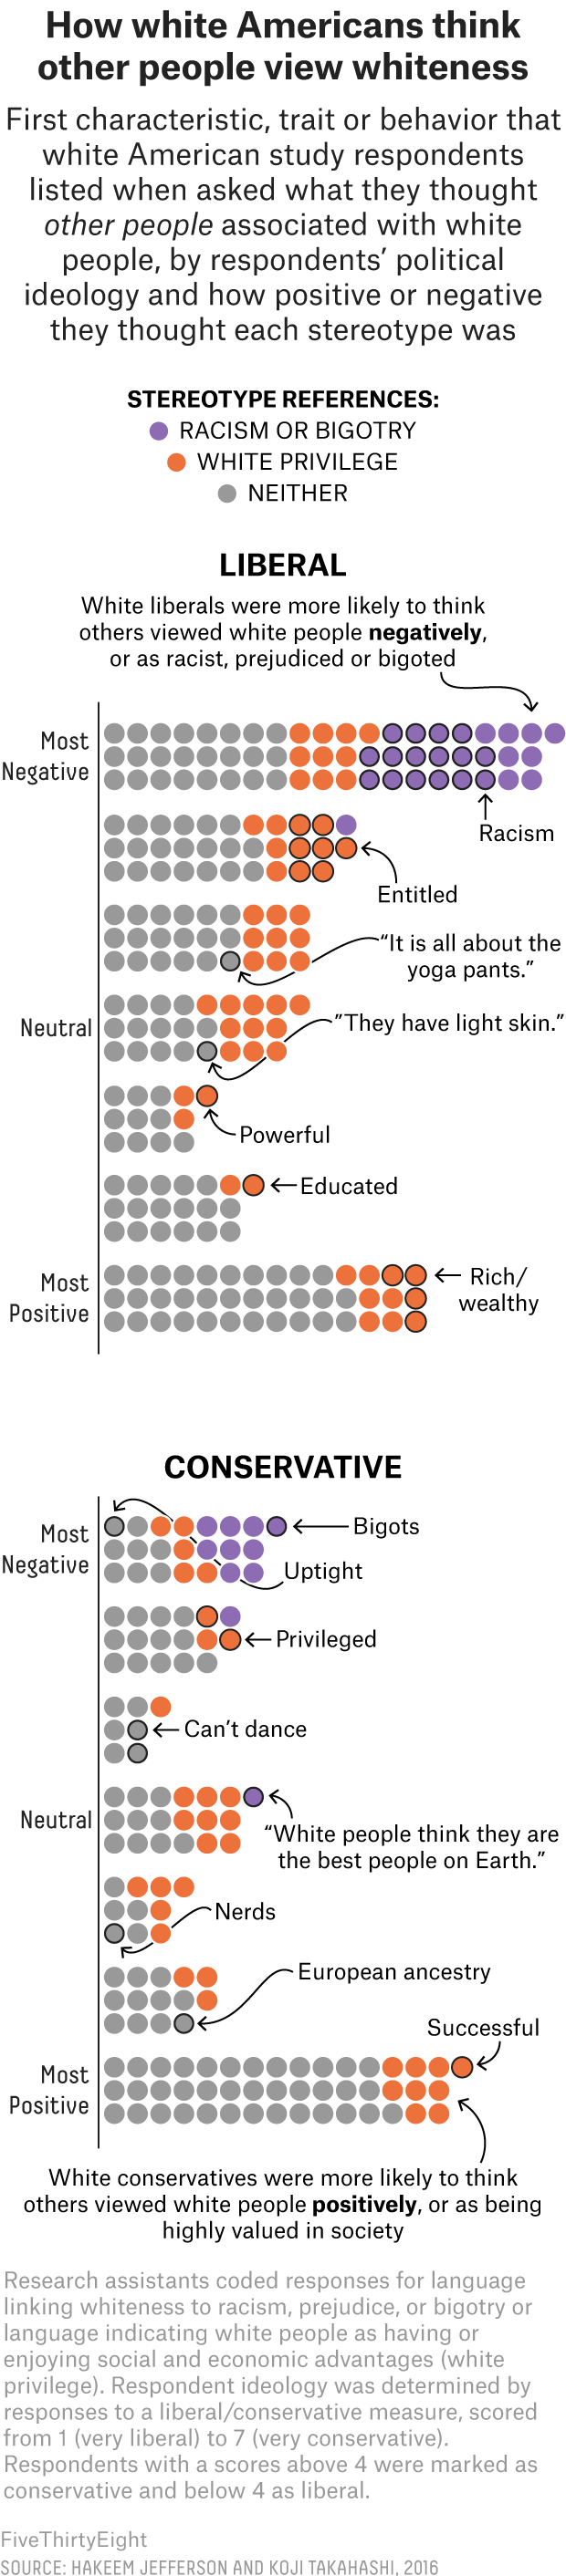 How The Politics Of White Liberals And White Conservatives Are Shaped By Whiteness 2